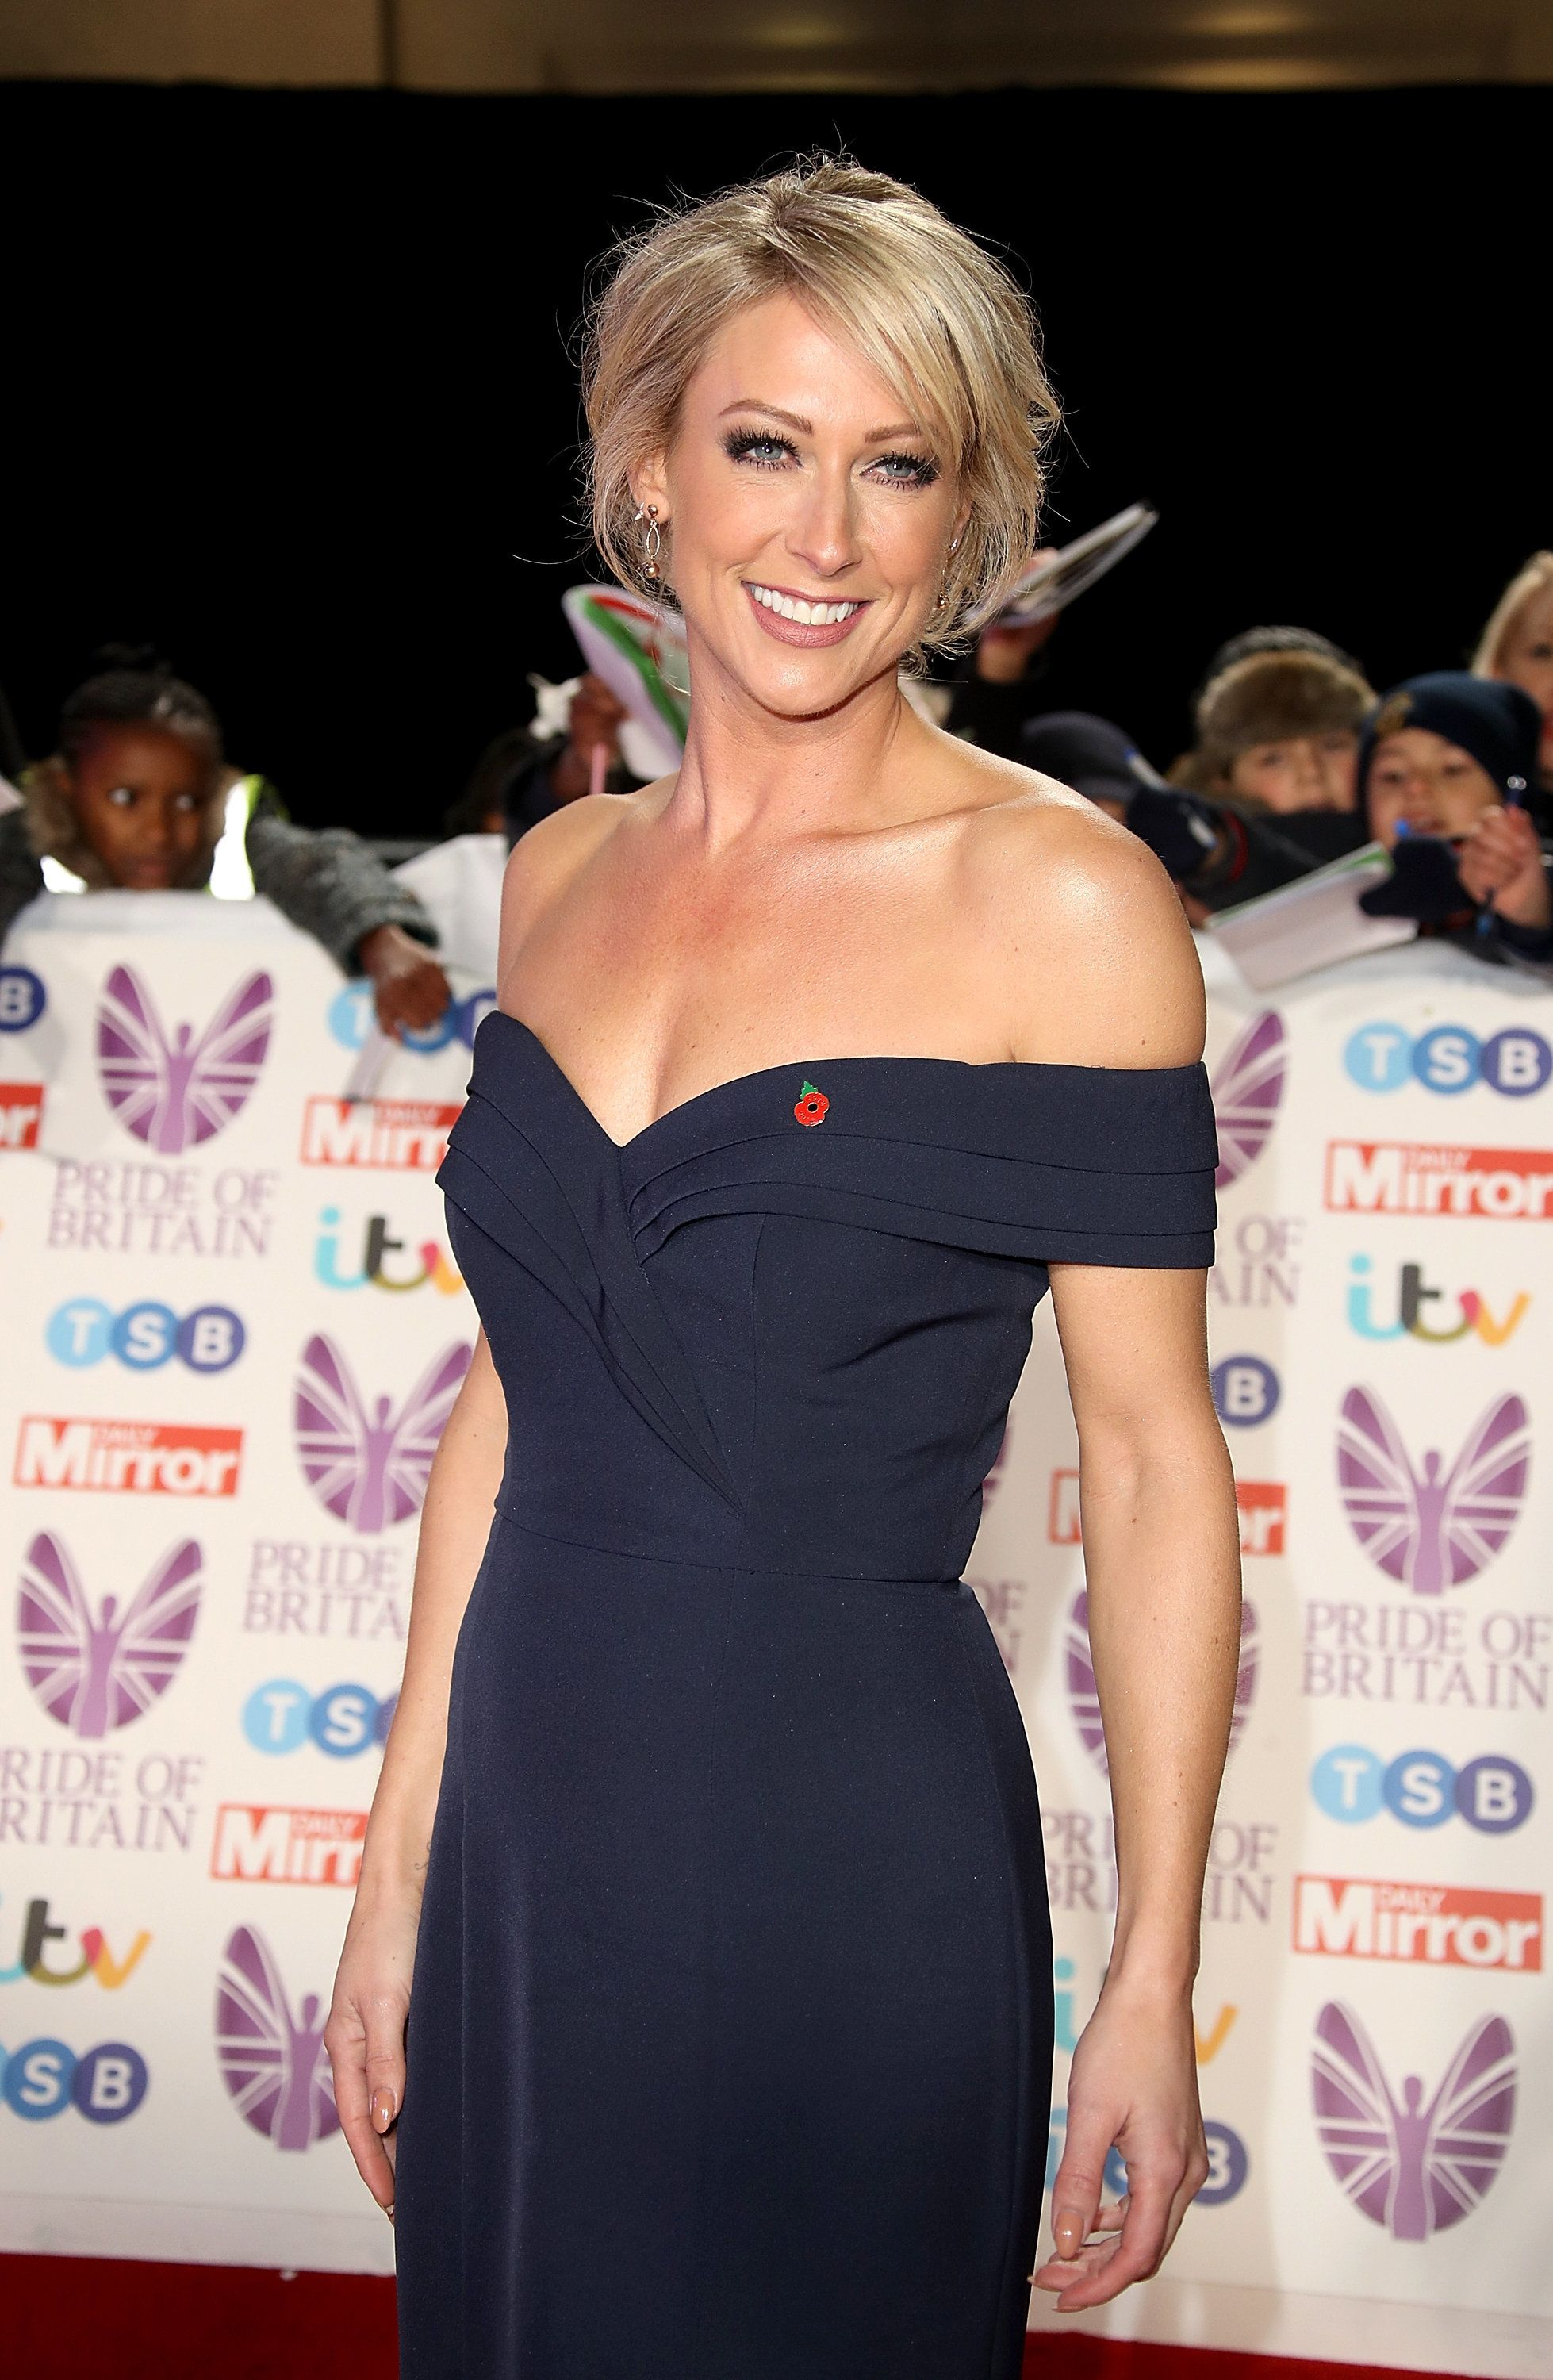 'Strictly' Star Faye Tozer Admits She's Struggling With Being Away From Her